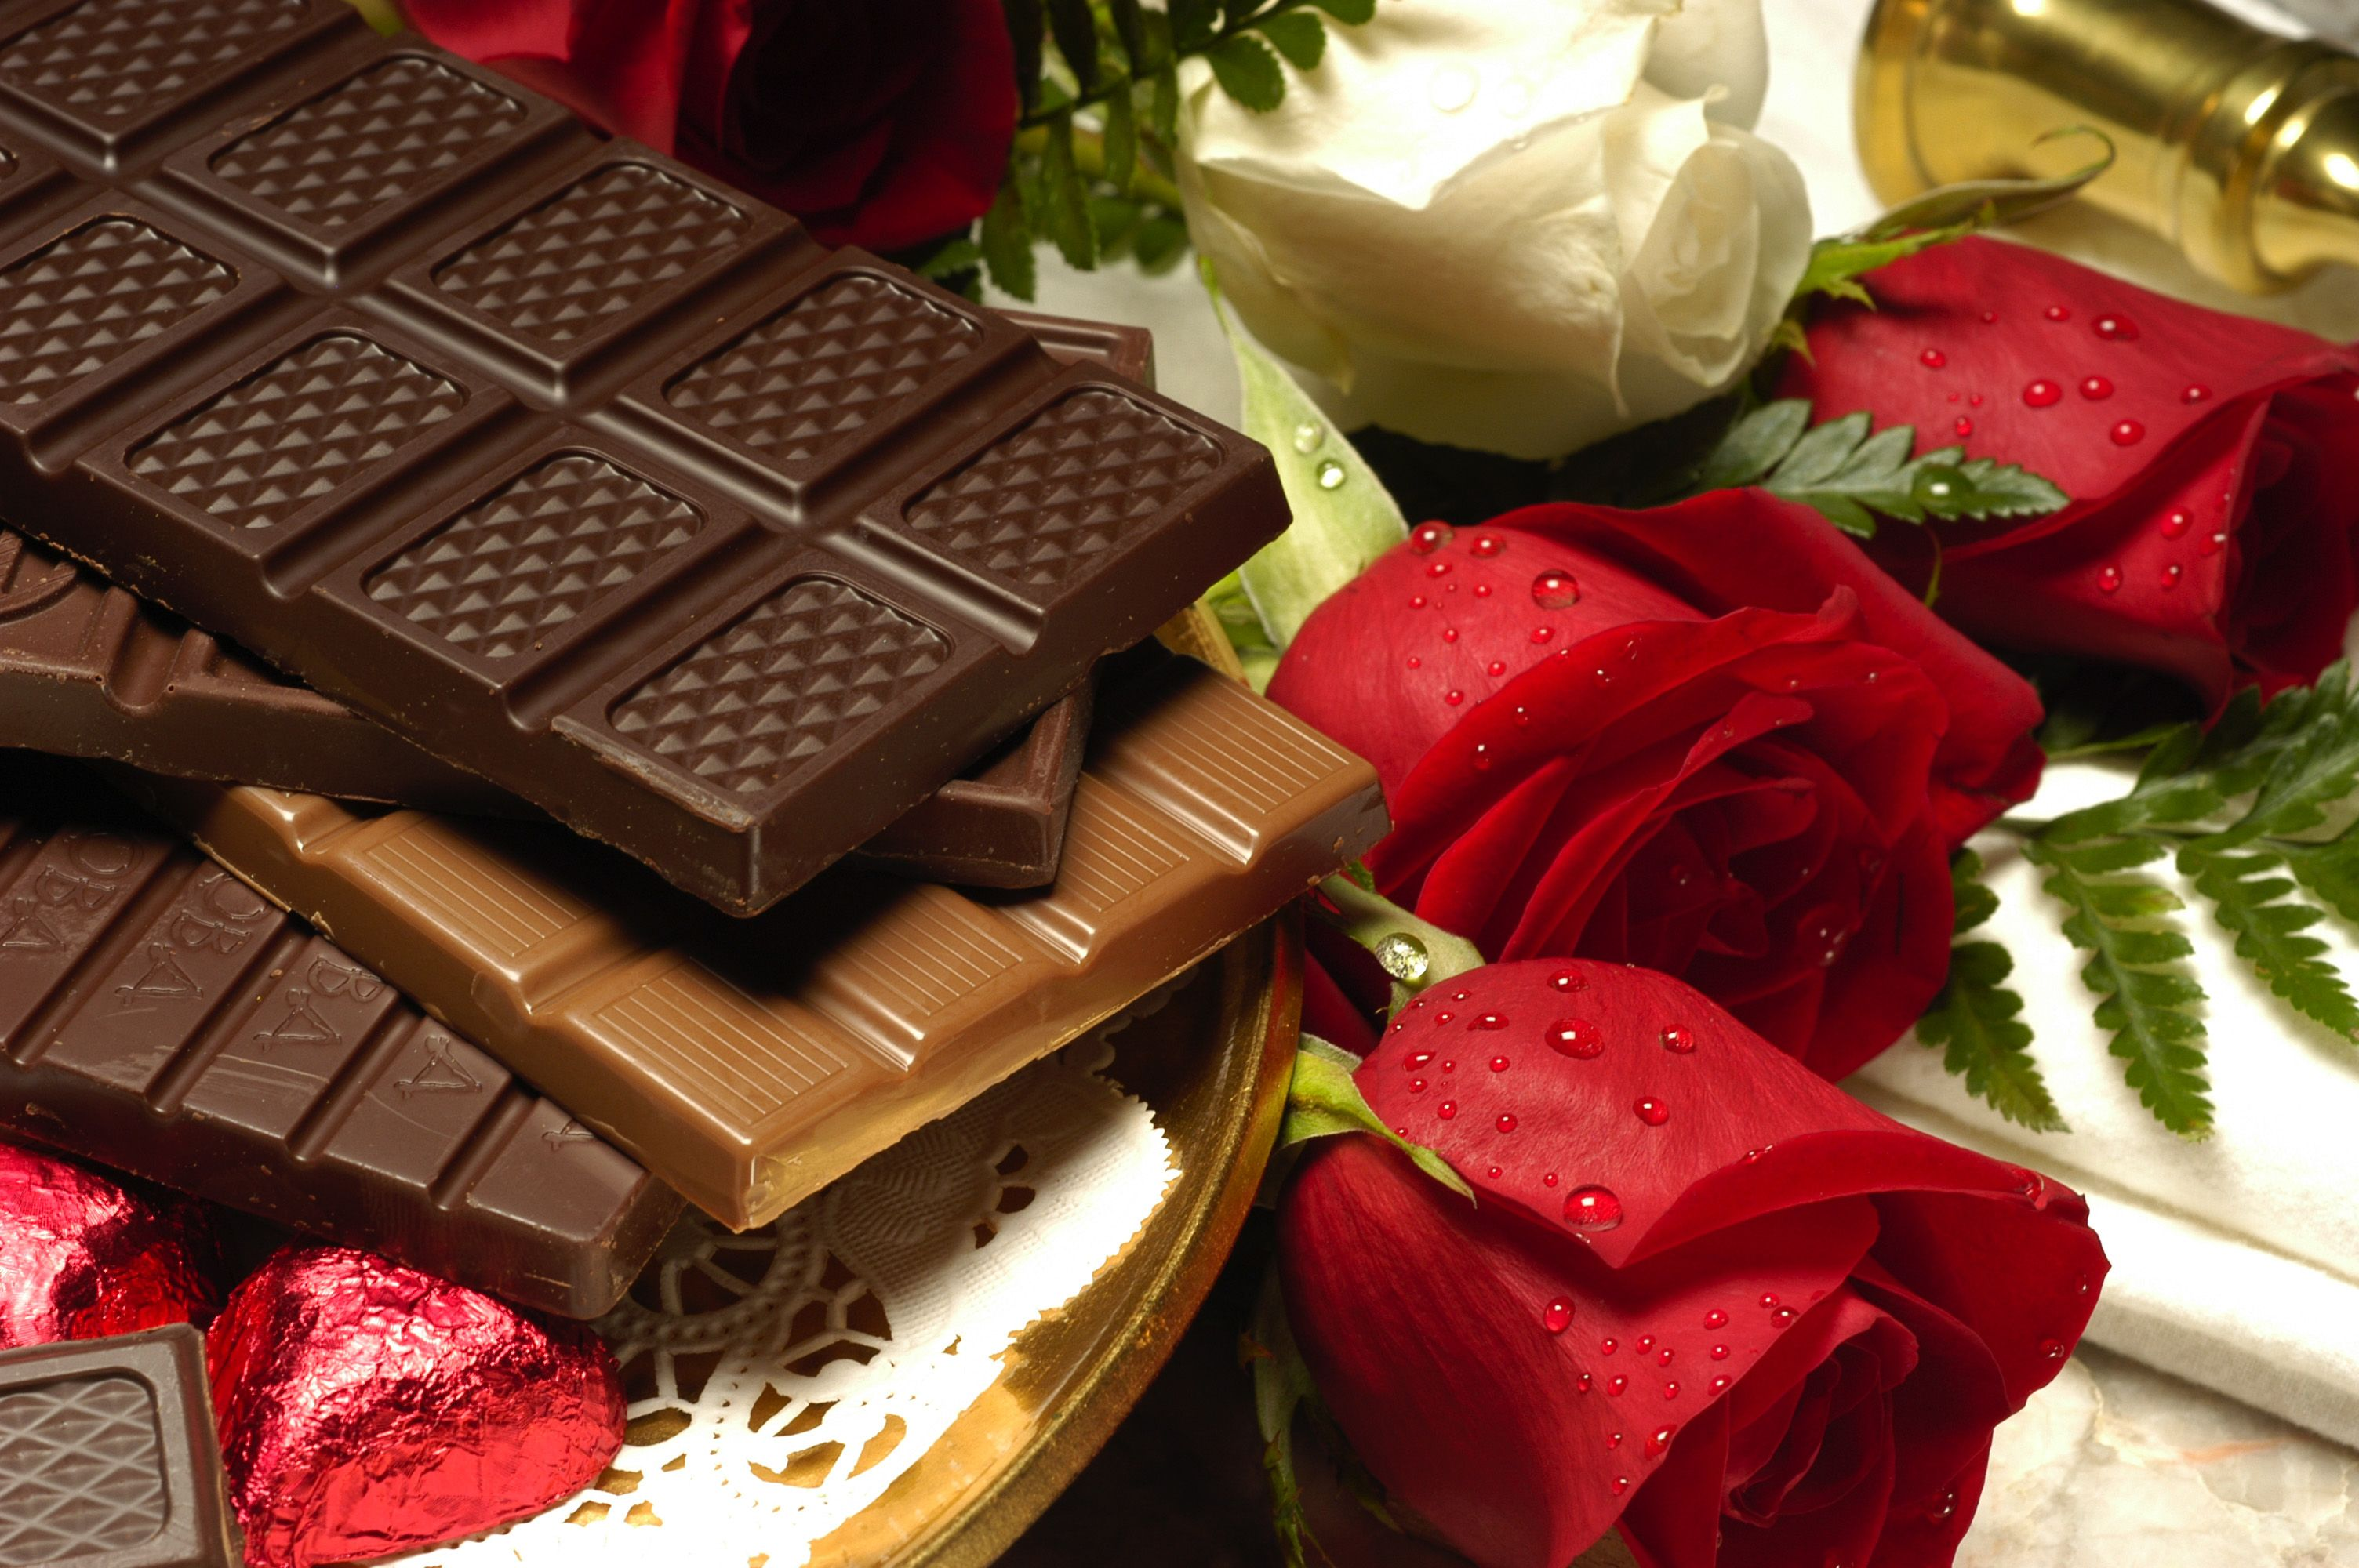 Resultats Google Recherche D Images Correspondant A Http Library Thinkquest O Happy Chocolate Day Chocolate Day Chocolate